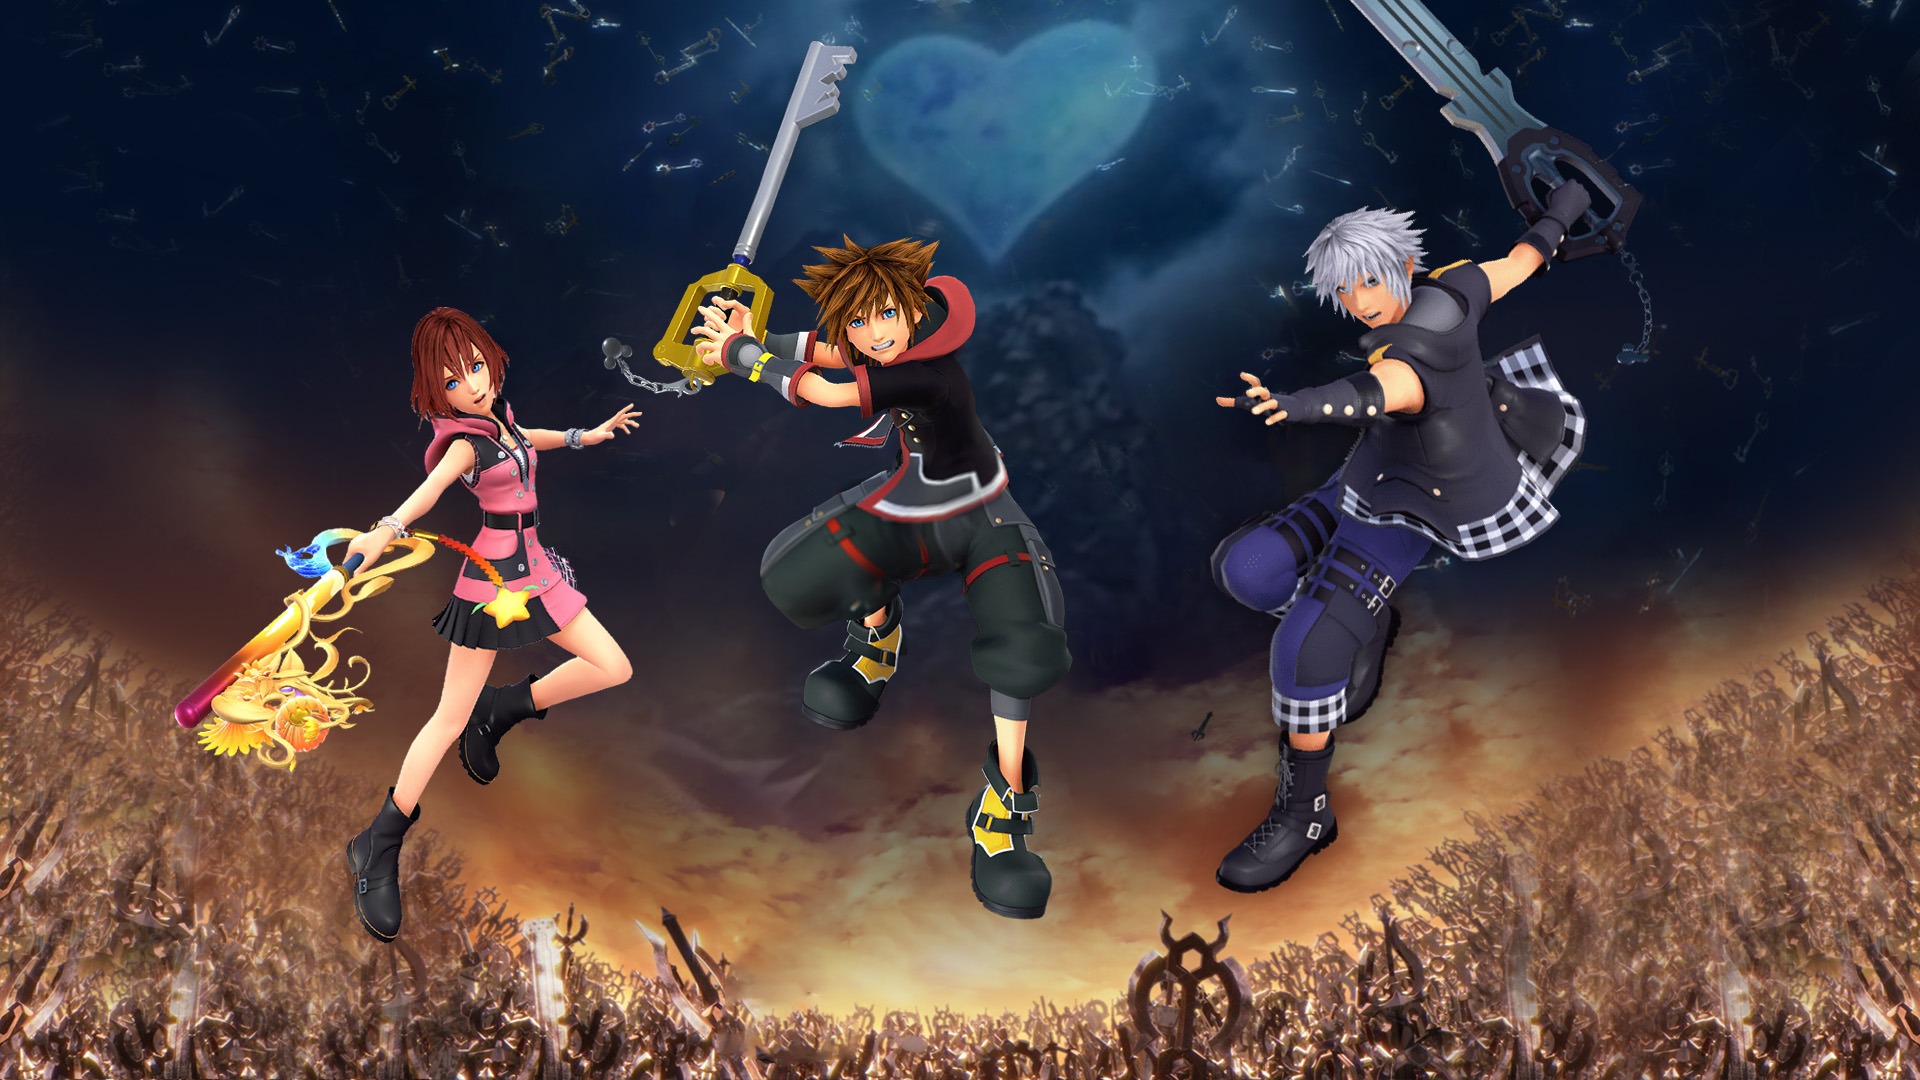 Kingdom Hearts Iii Sora Riku Kairi Wallpaper By The Dark Mamba